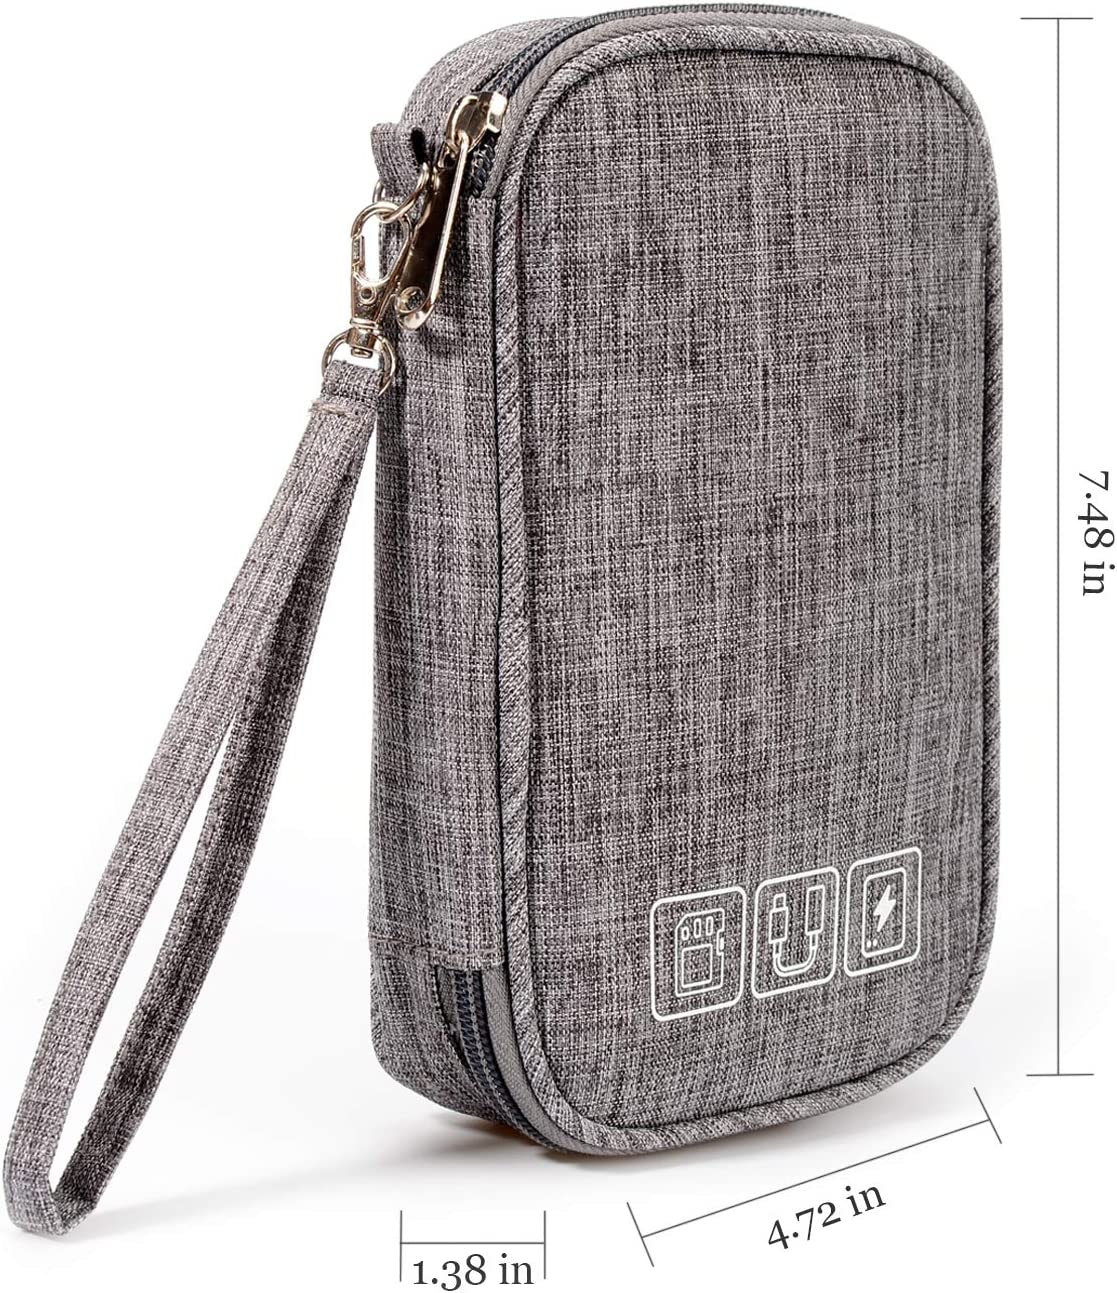 Portable Travel Universal Cable Organizer Electronics Accessories Bag, YLQP Electronic Organizer Small Digital Gadgets Carrying Case Pouch for USB Cord, SD Cards, Earphone, Power Bank (Grey)